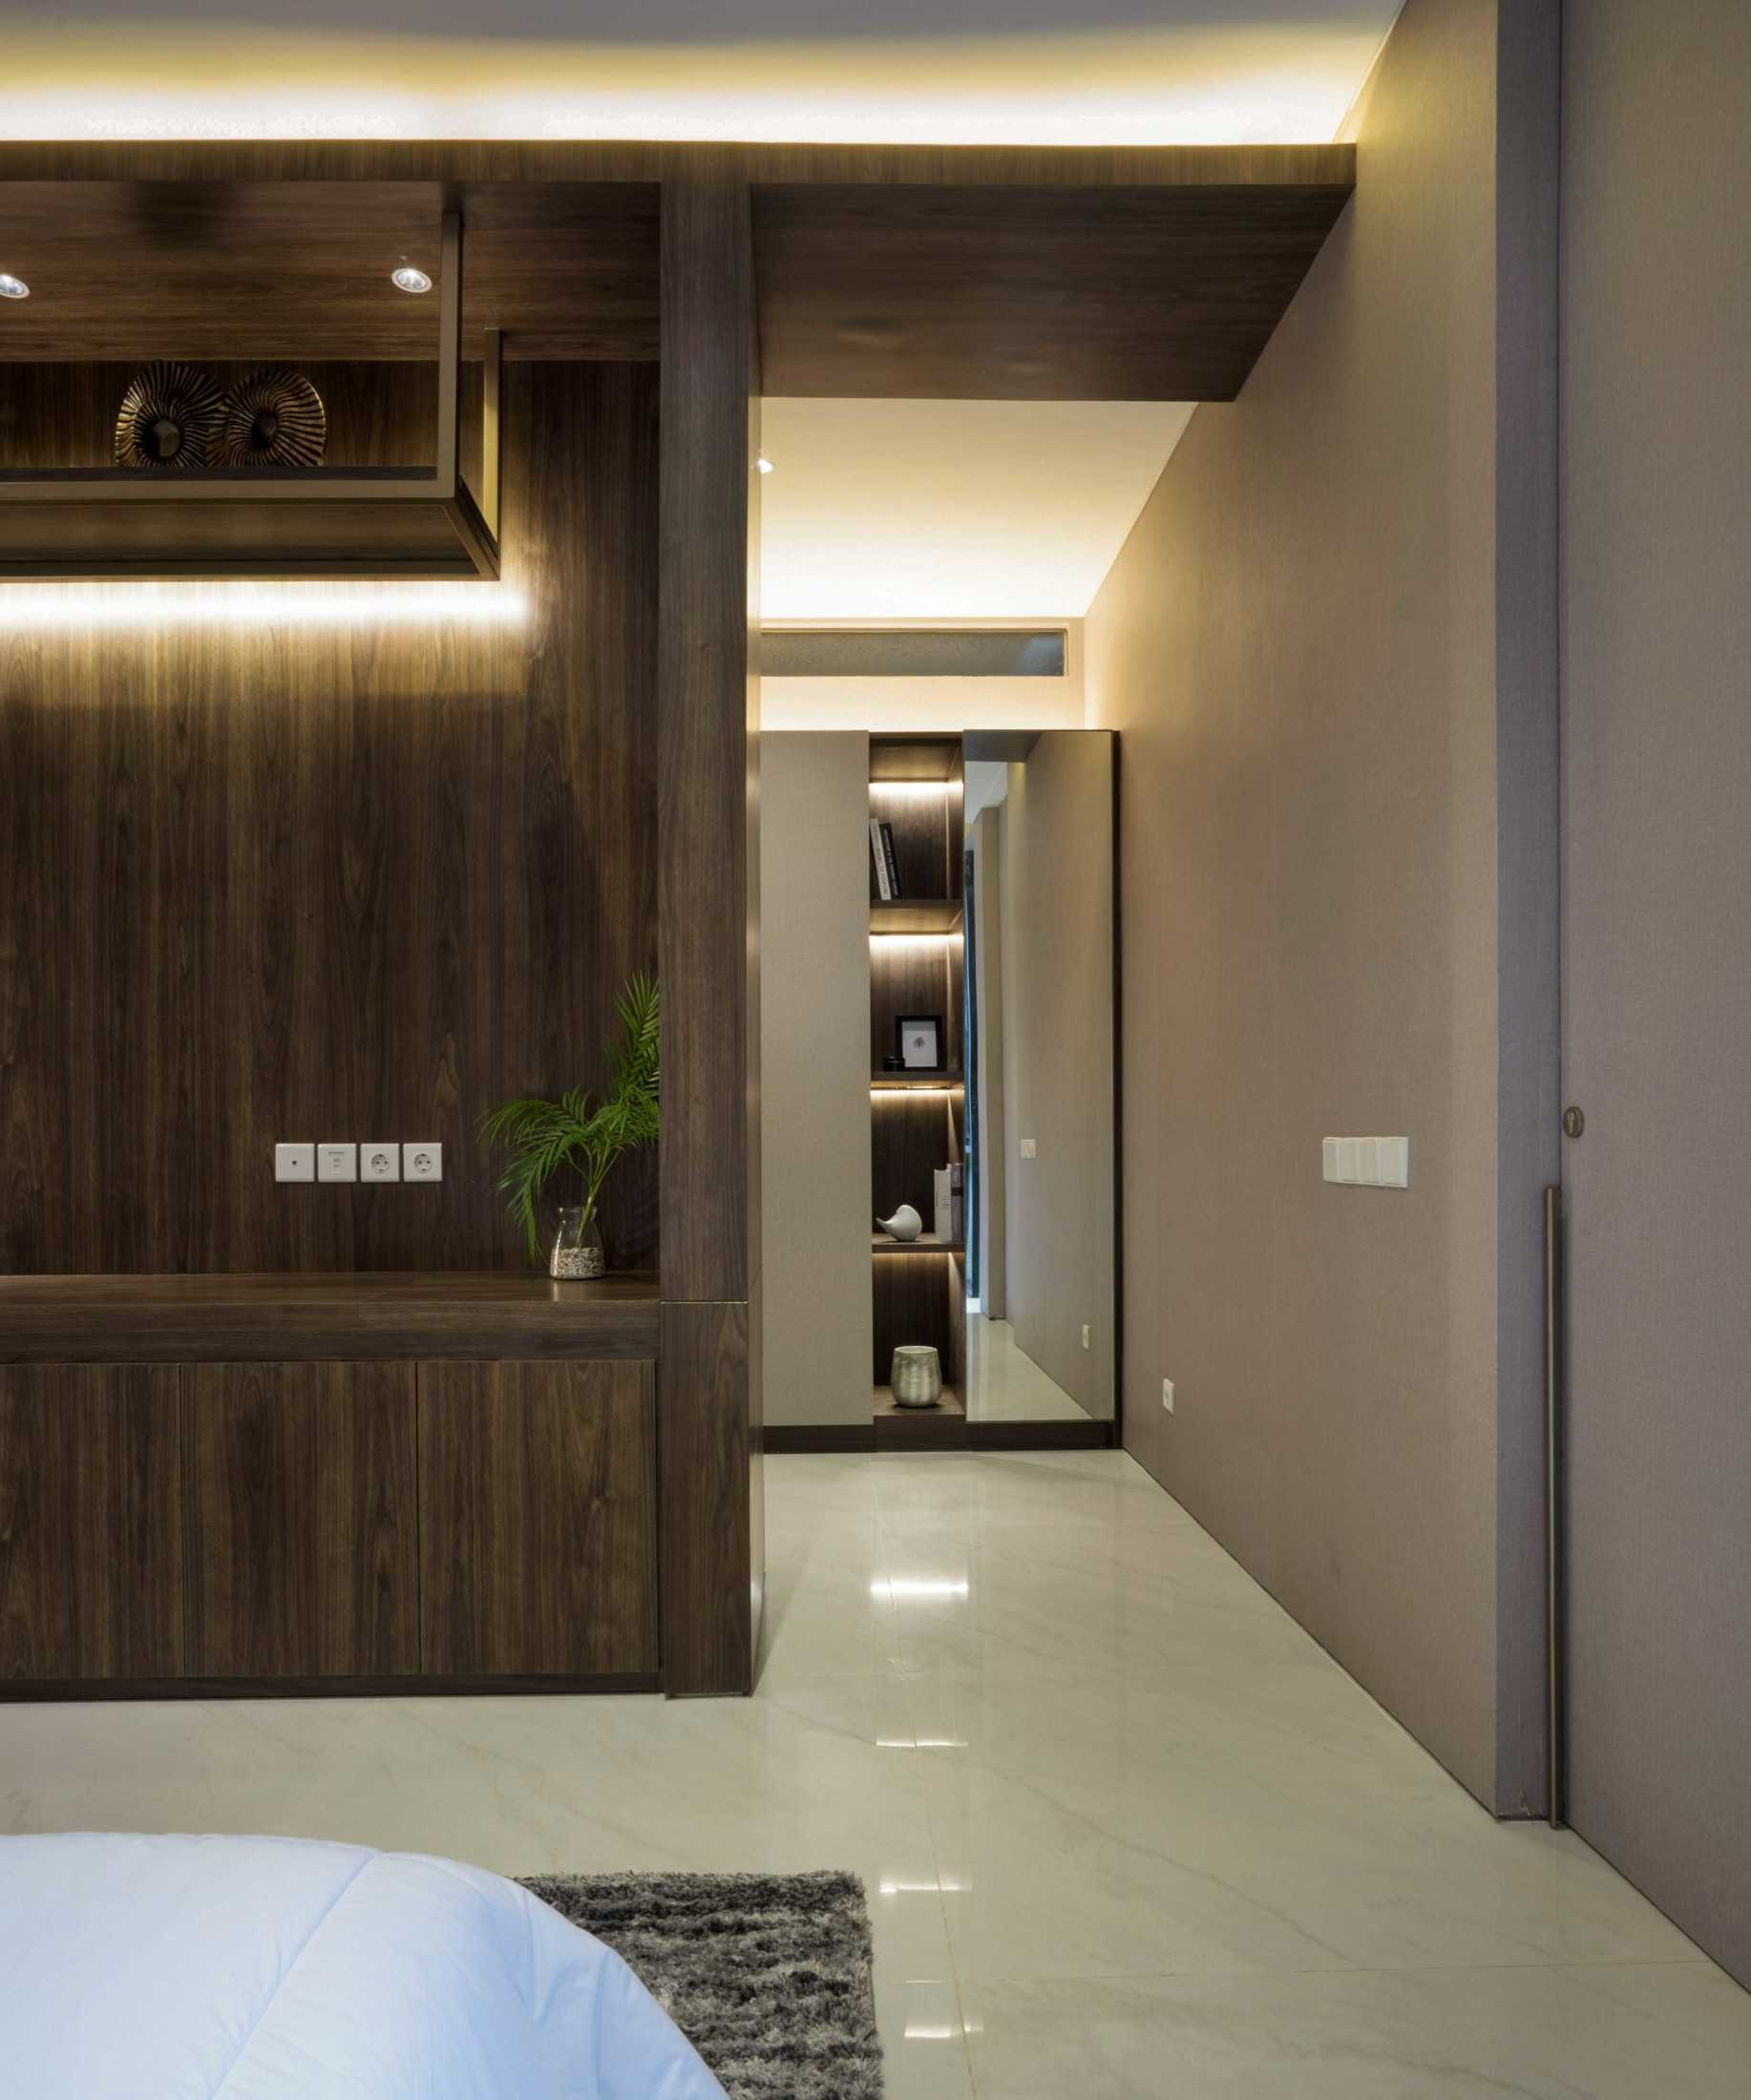 Simple Projects Architecture 'hhh' House Surabaya, Kota Sby, Jawa Timur, Indonesia  Simple-Projects-Architecture-Hhh-House  75085